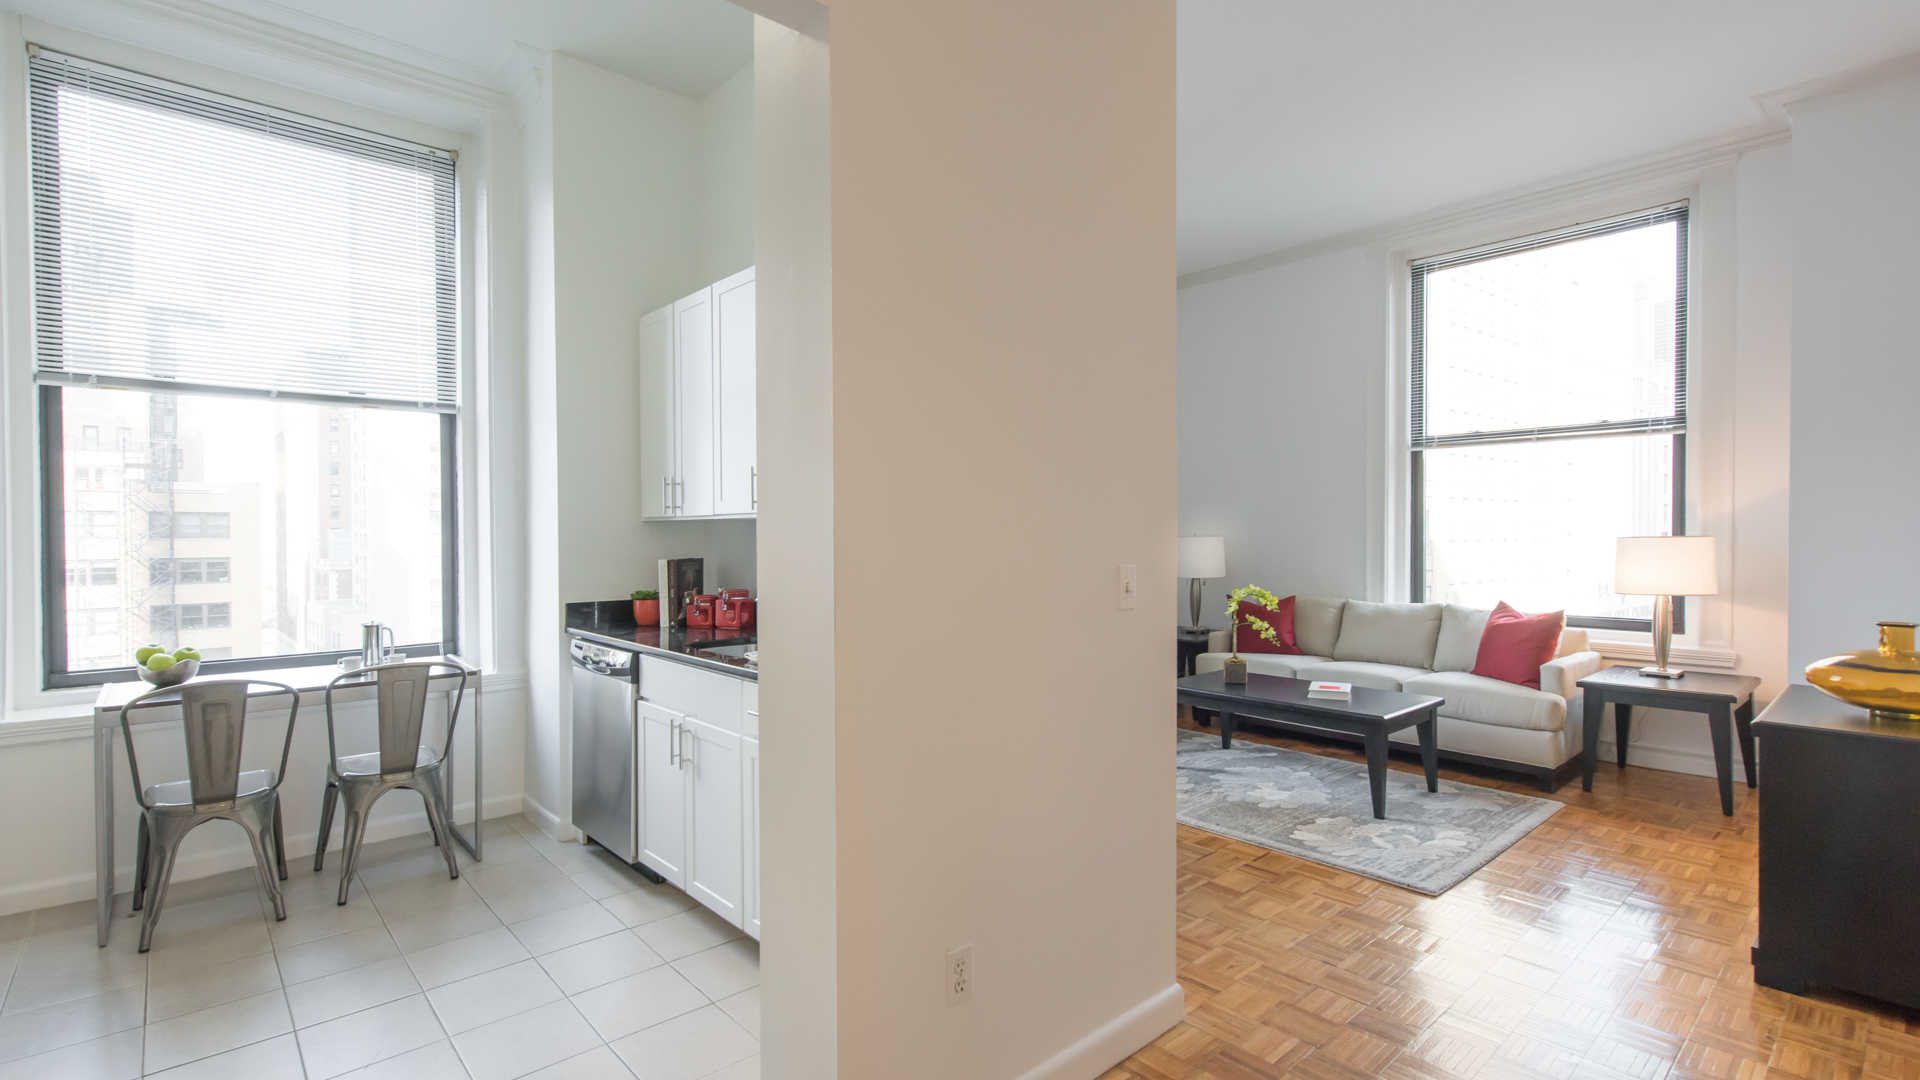 Superior 71 Broadway Apartments Reviews In Financial District   71 Broadway |  EquityApartments.com